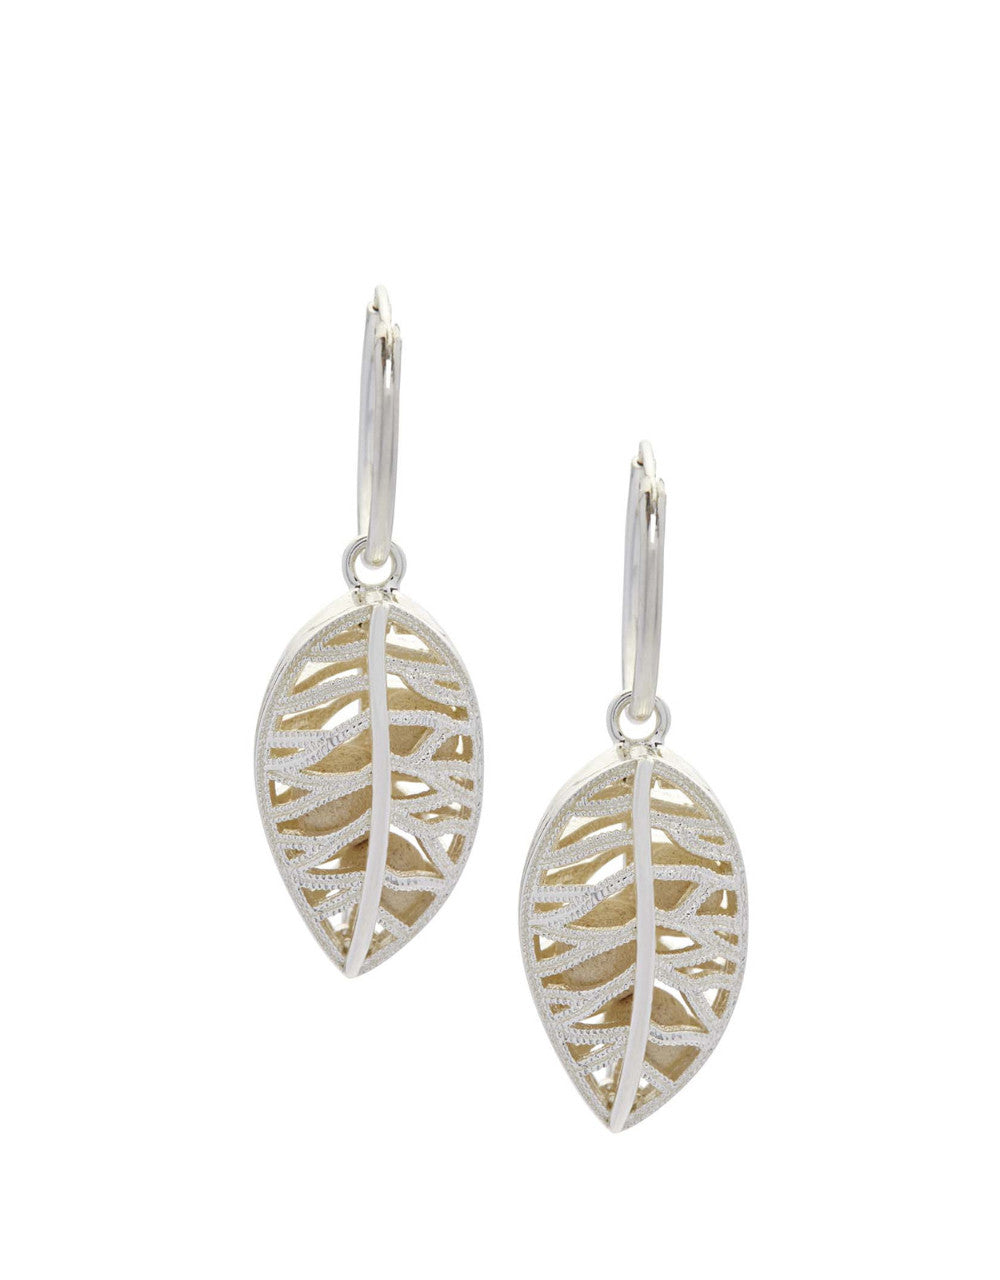 Laurel Earrings - Silver